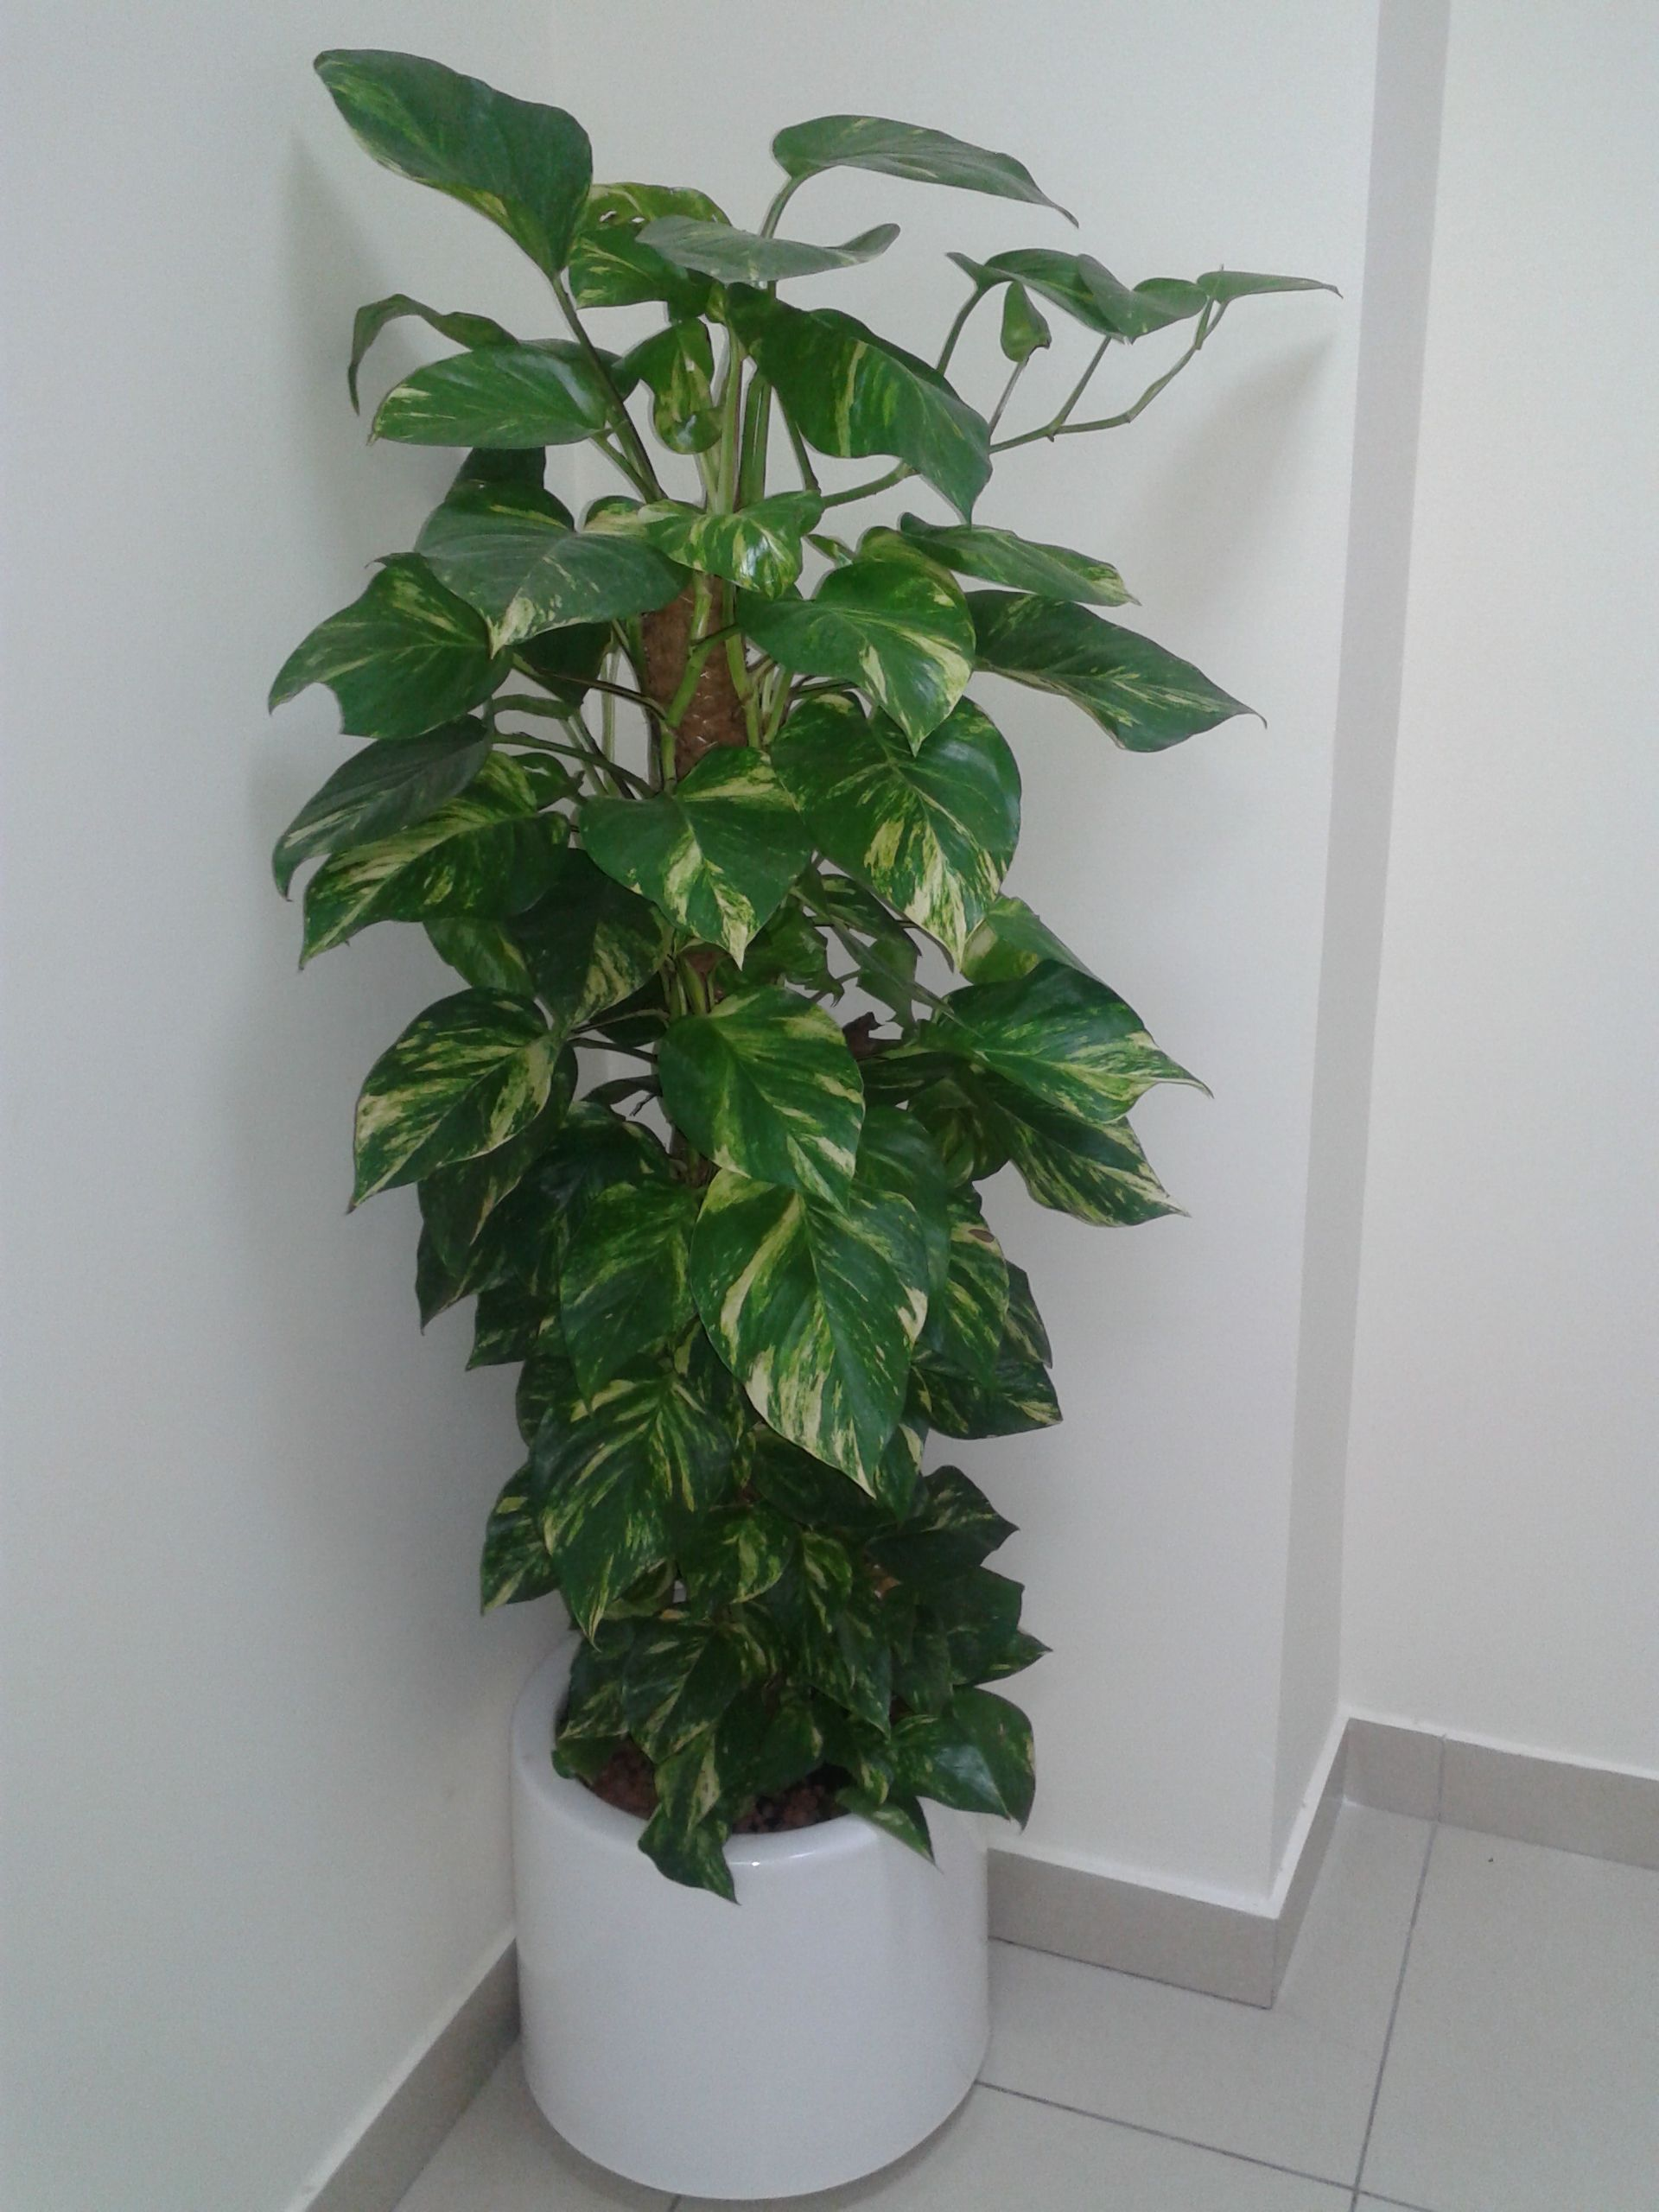 Pin by Stem and Leaves on Indoor Plants Dubai | Pinterest | Plants